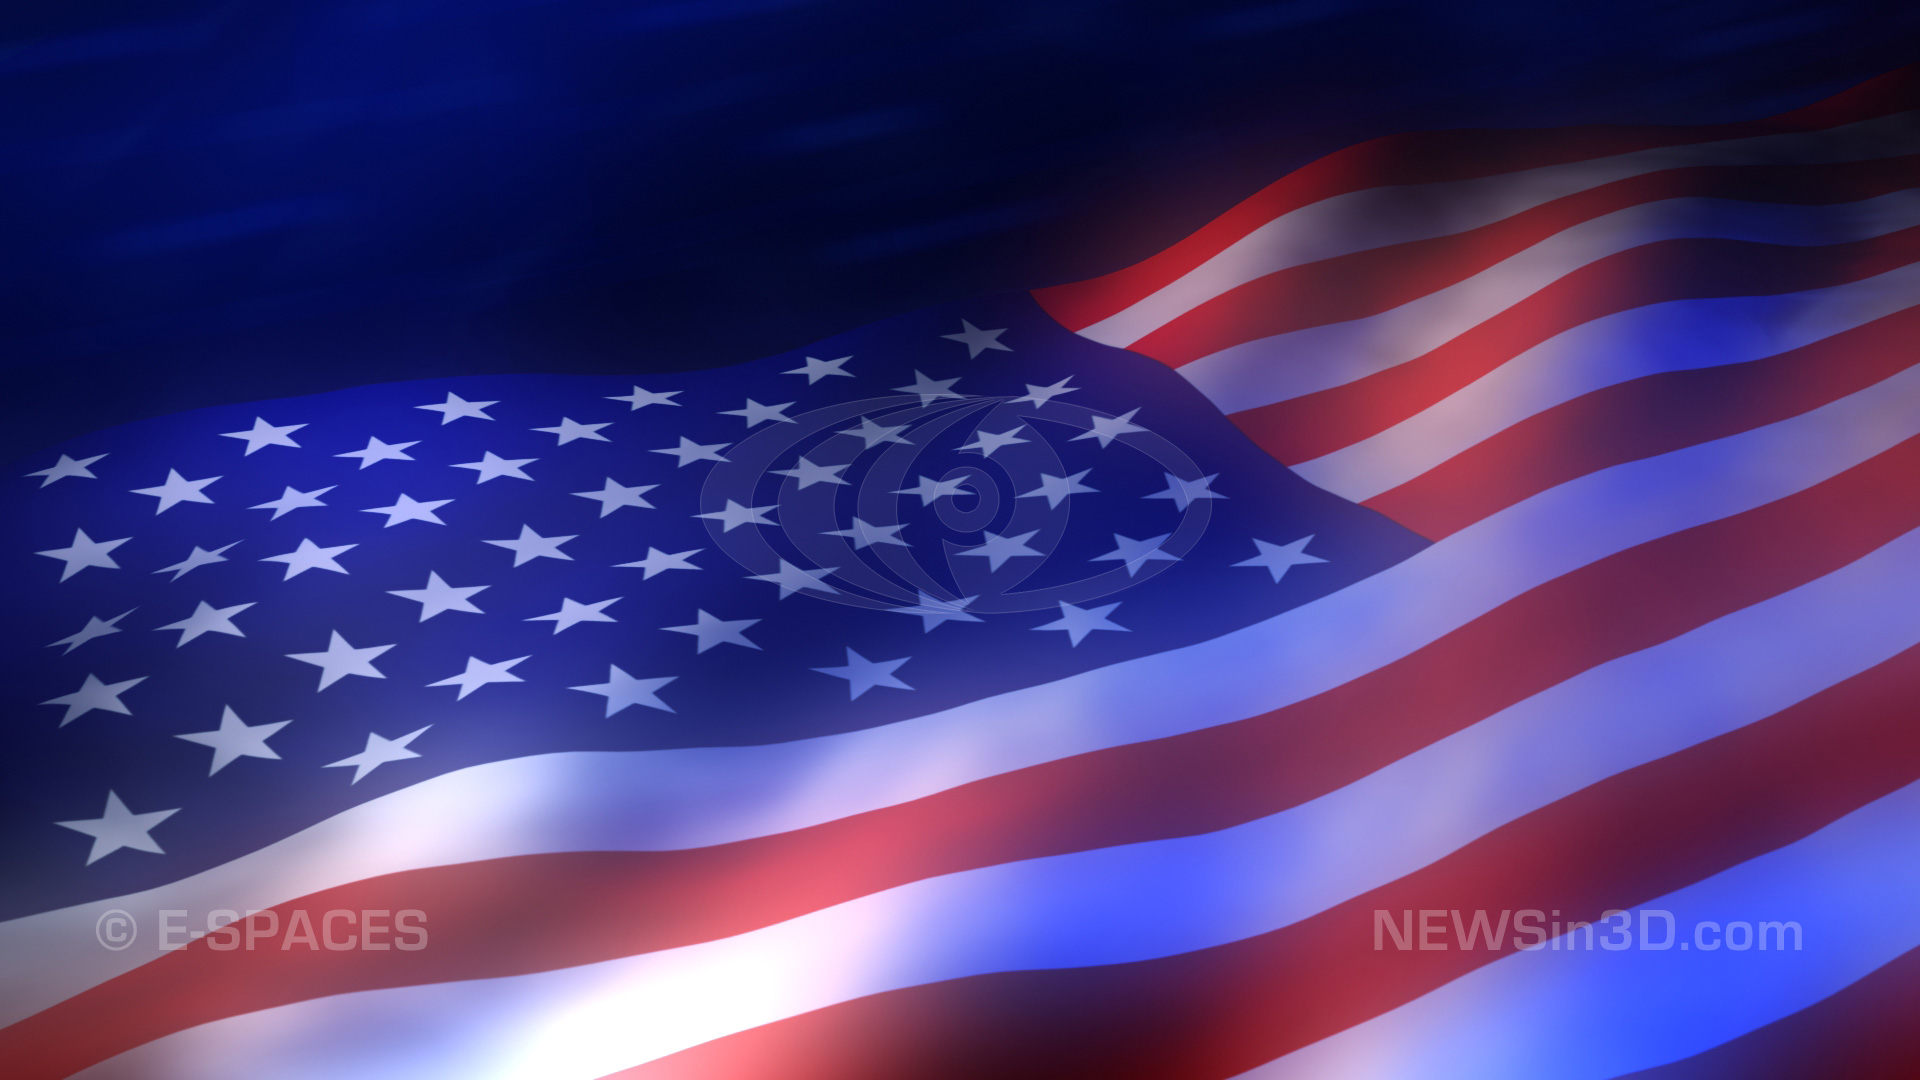 http://3danimation.e-spaces.com/backgrounds/hd_background_american_flag.jpg